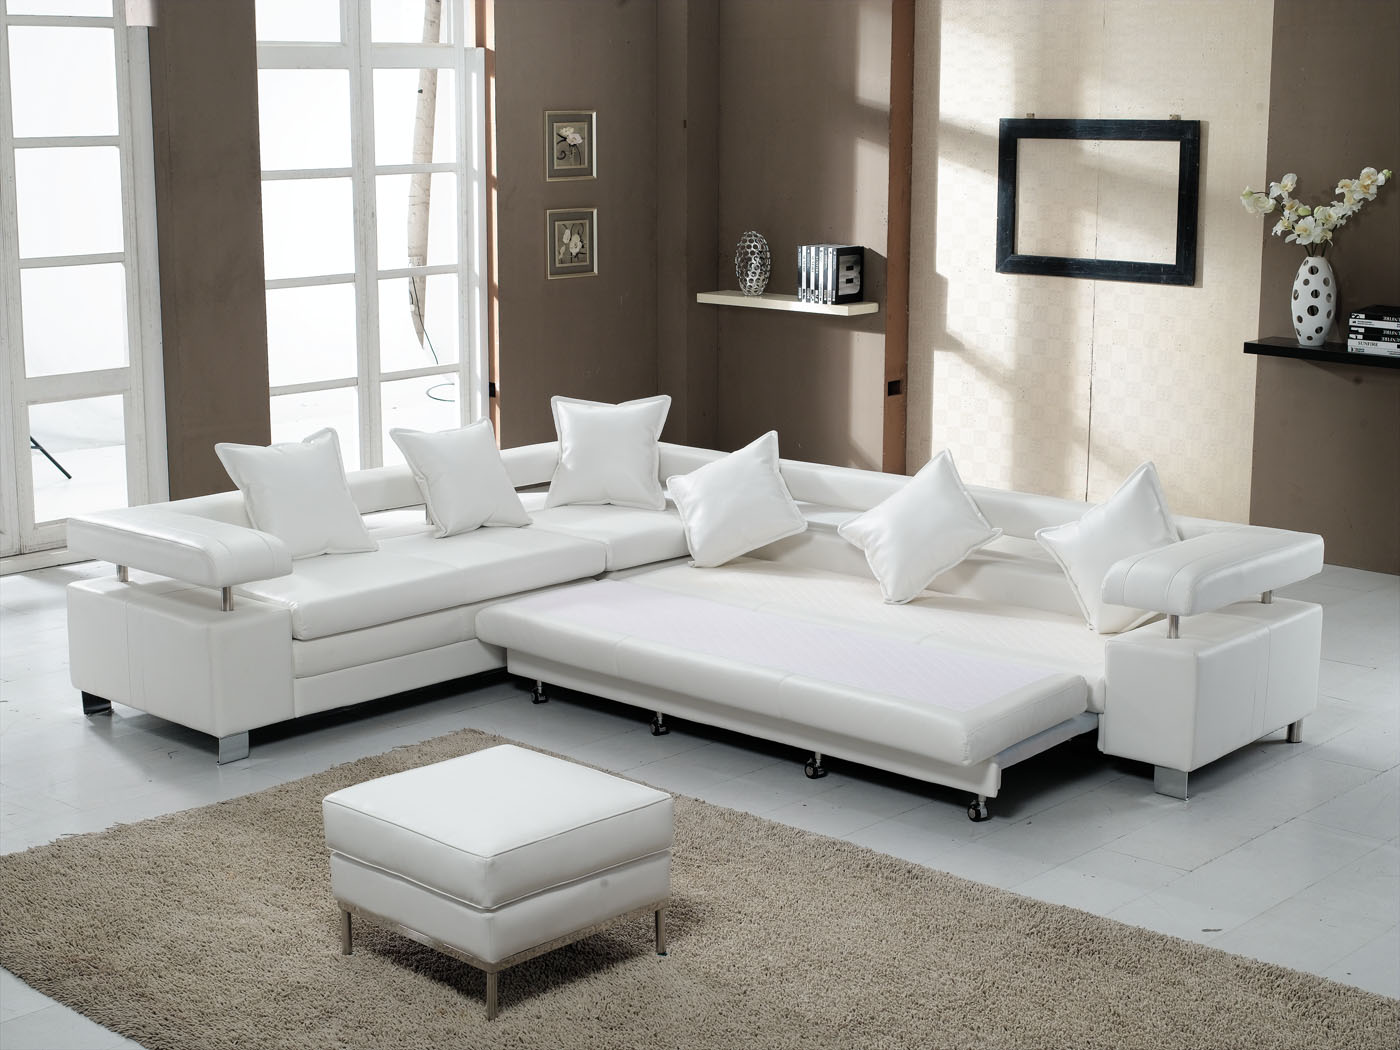 White Apartment Size Sleeper Sofa With Pillows And Fur Rug